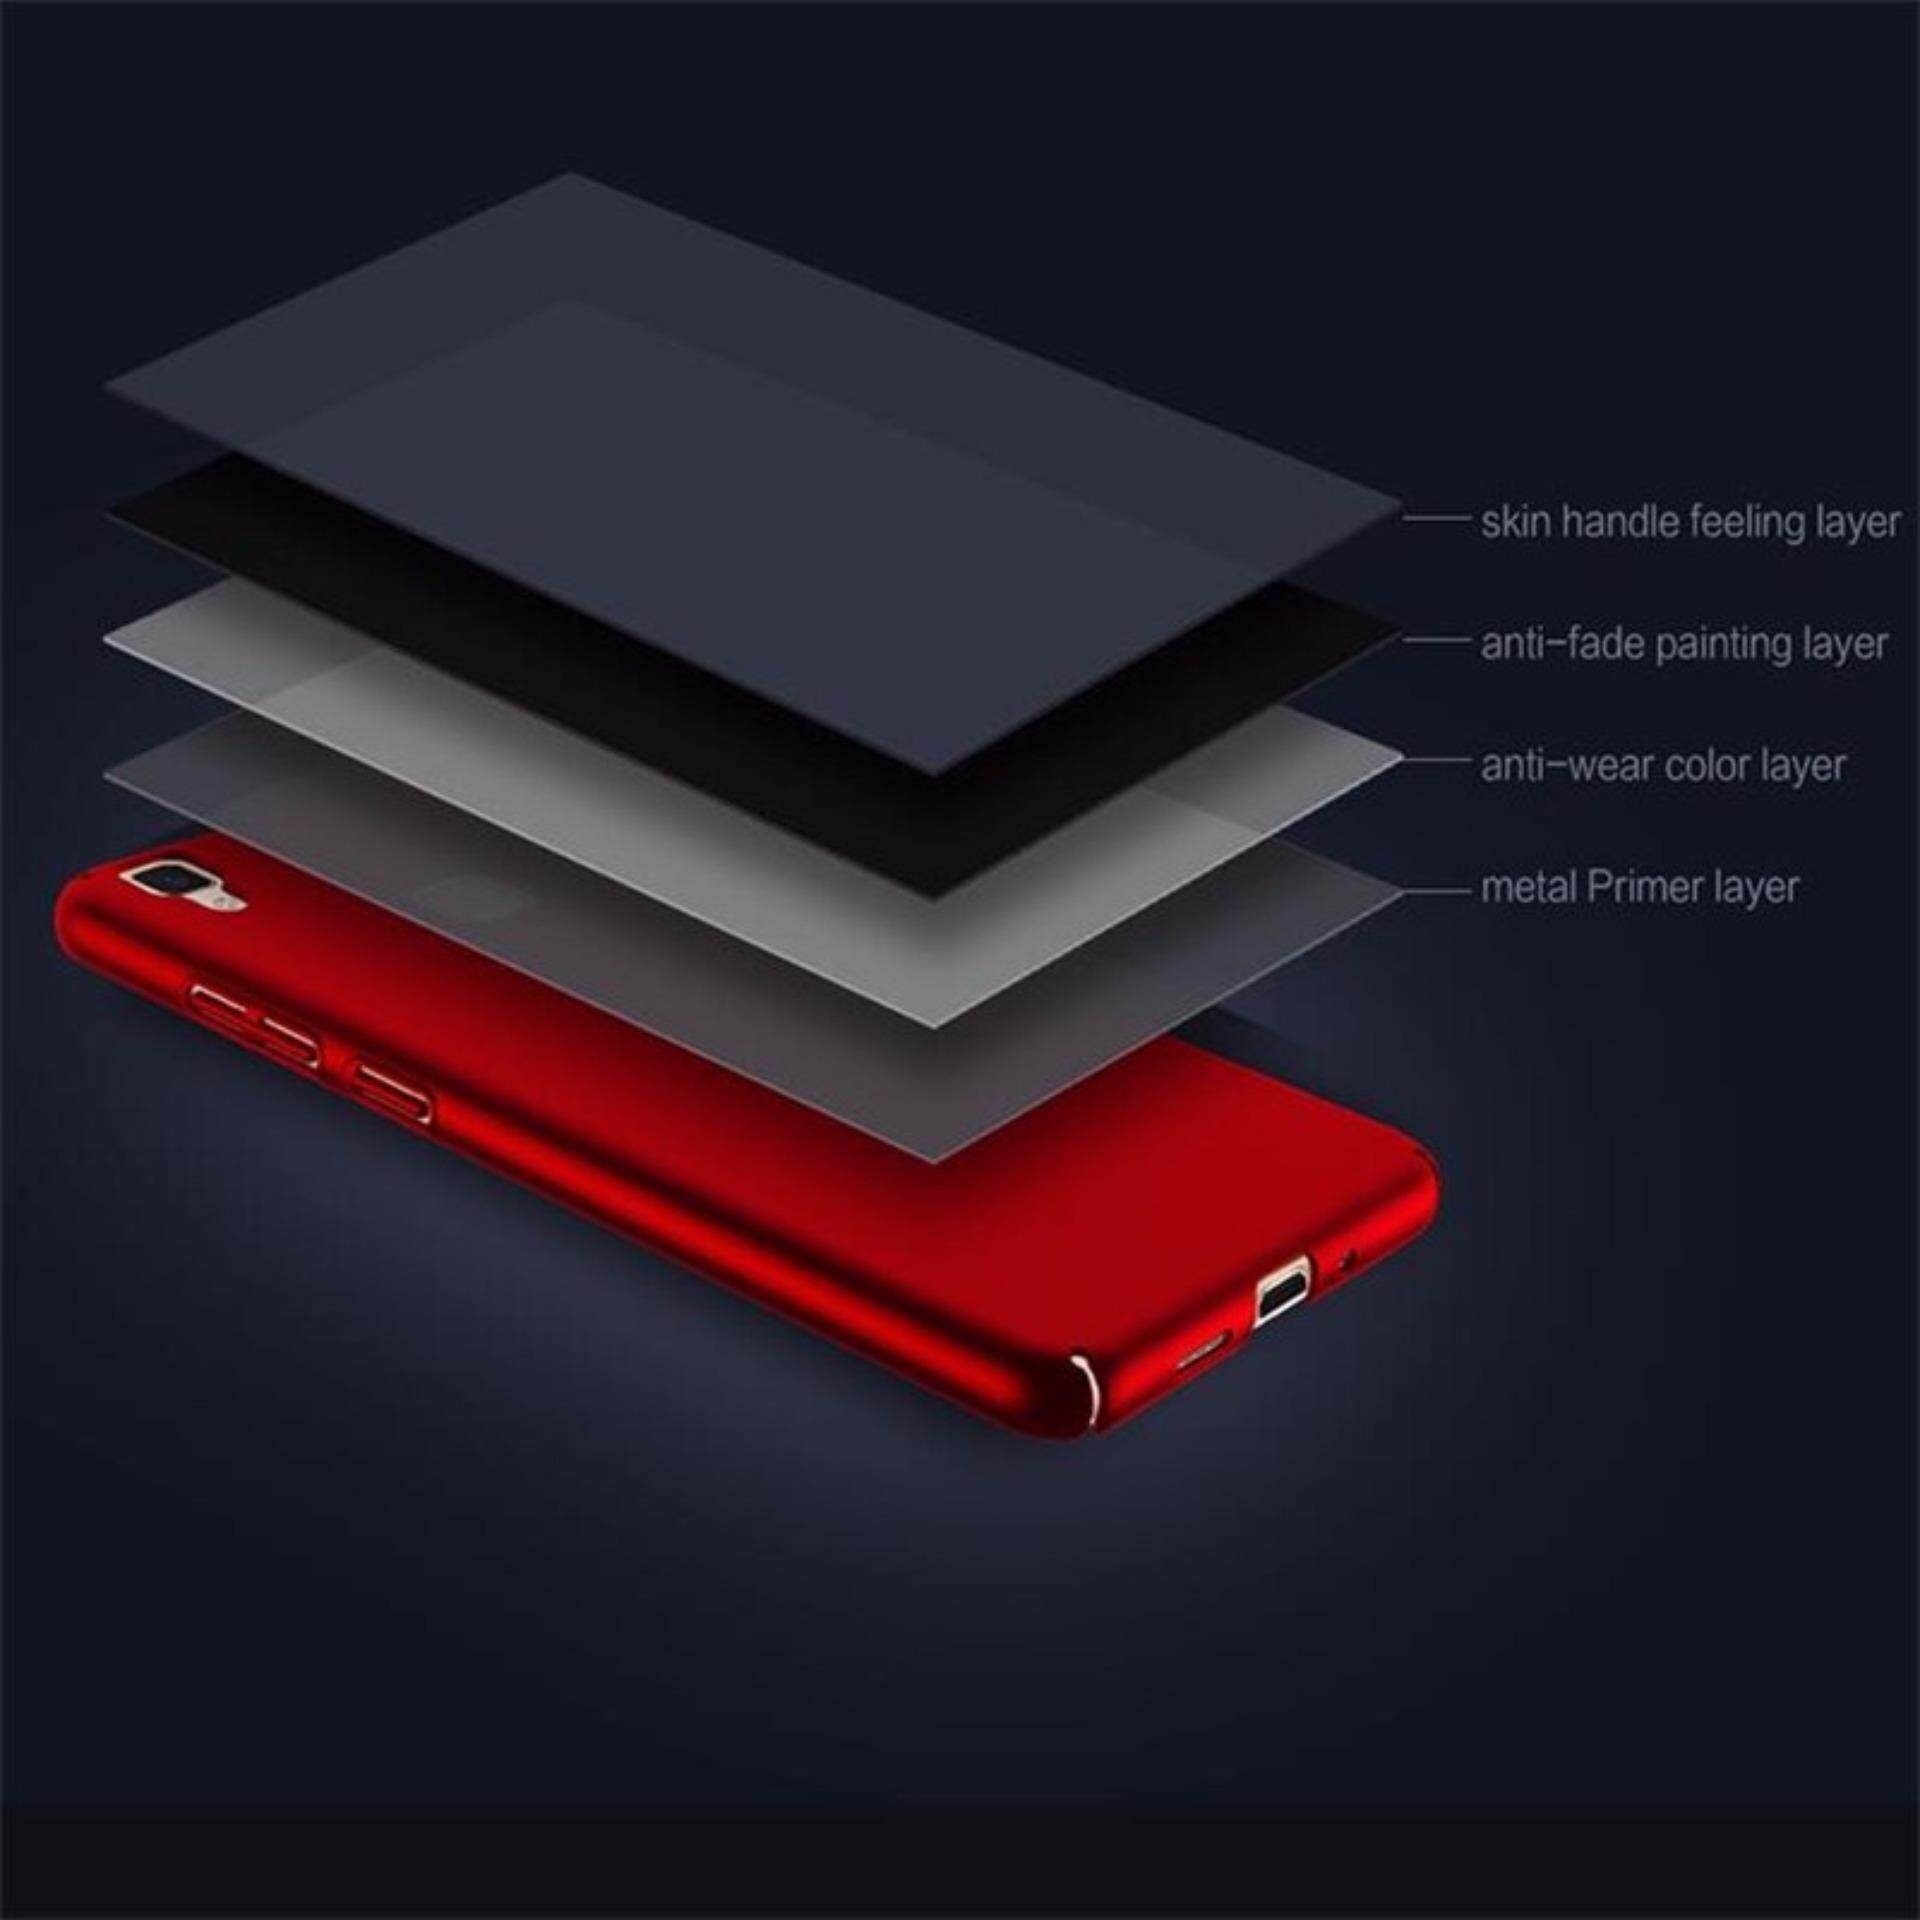 Super Hard PC Ultrathin Cover Protect Case For Vivo V3 Scrub Phone Cases(Red)